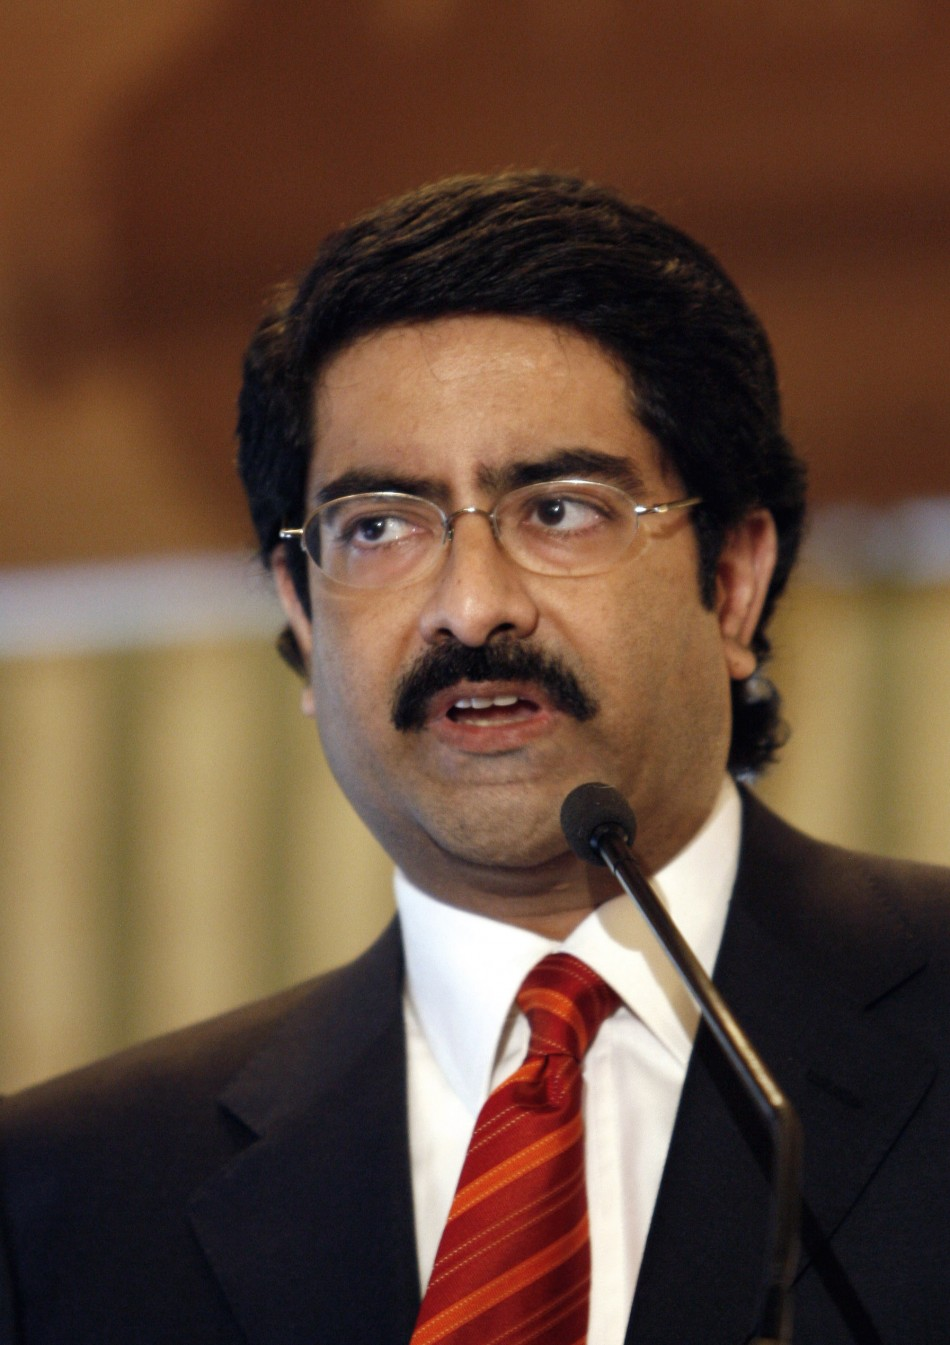 Kumar Birla earned a  million dollar salary, leaving the net worth at 9200 million in 2017